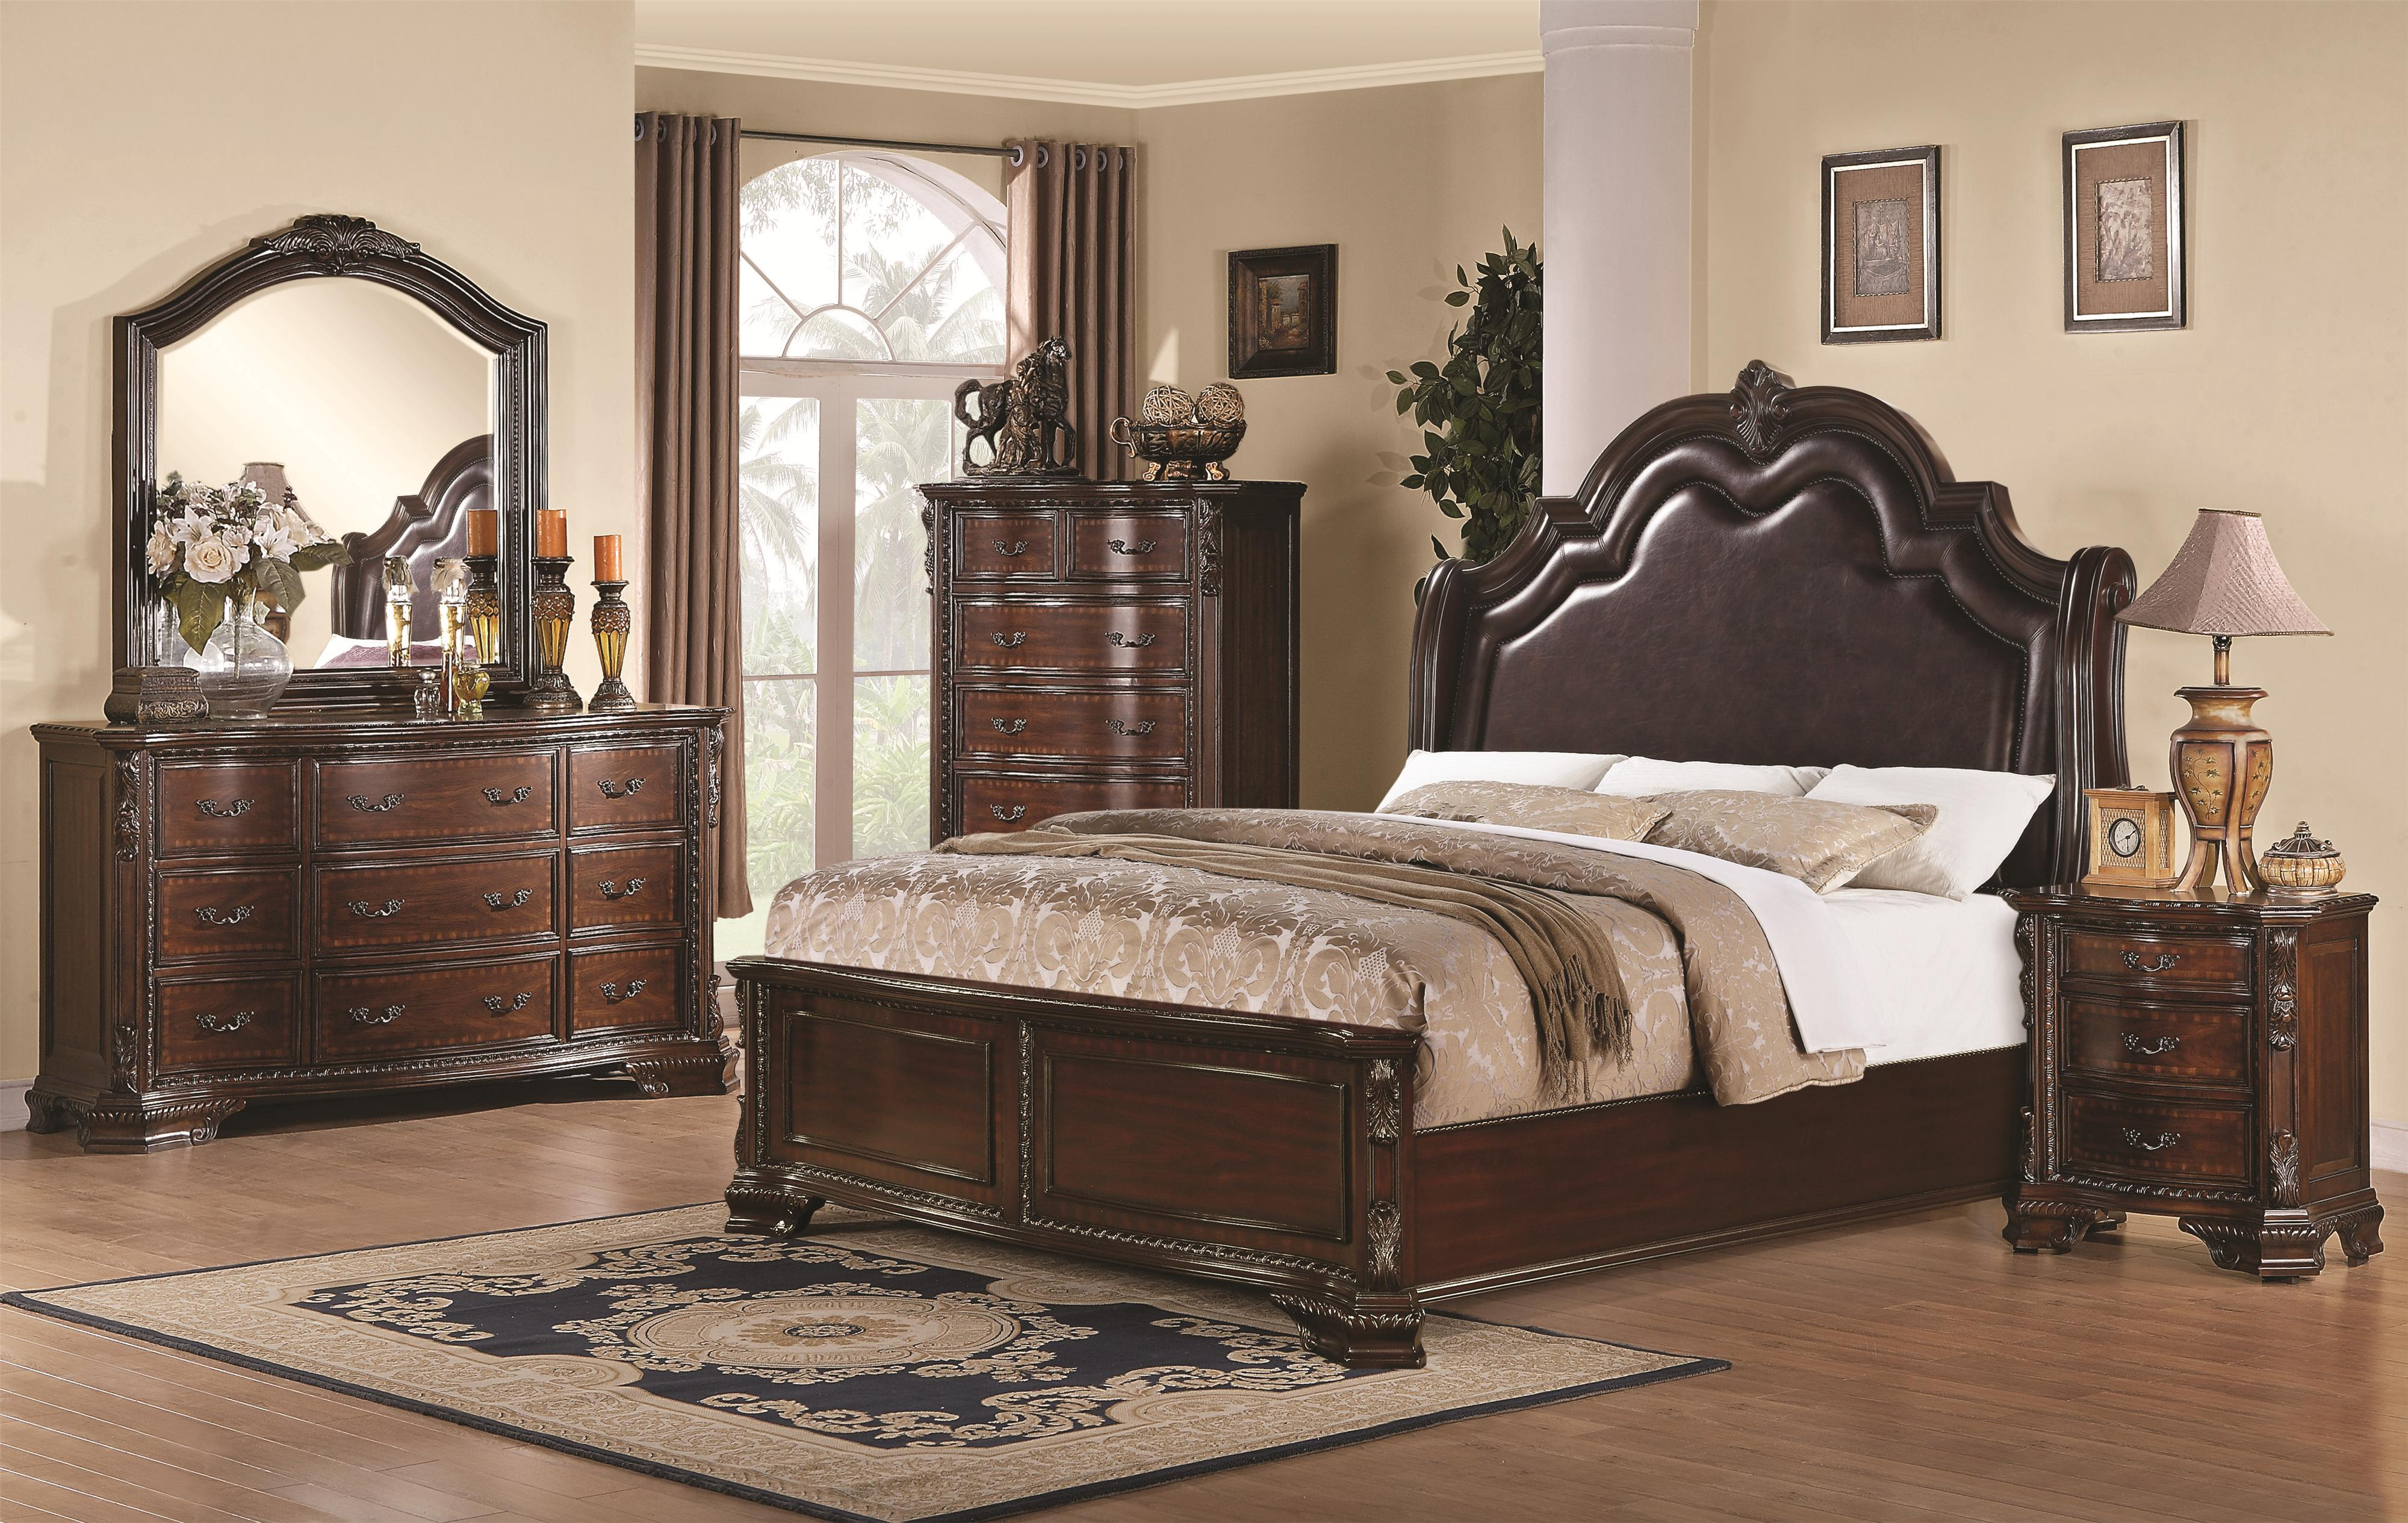 Coaster Maddison California King Bedroom Group 2 - Item Number: CK Bedroom Group 2